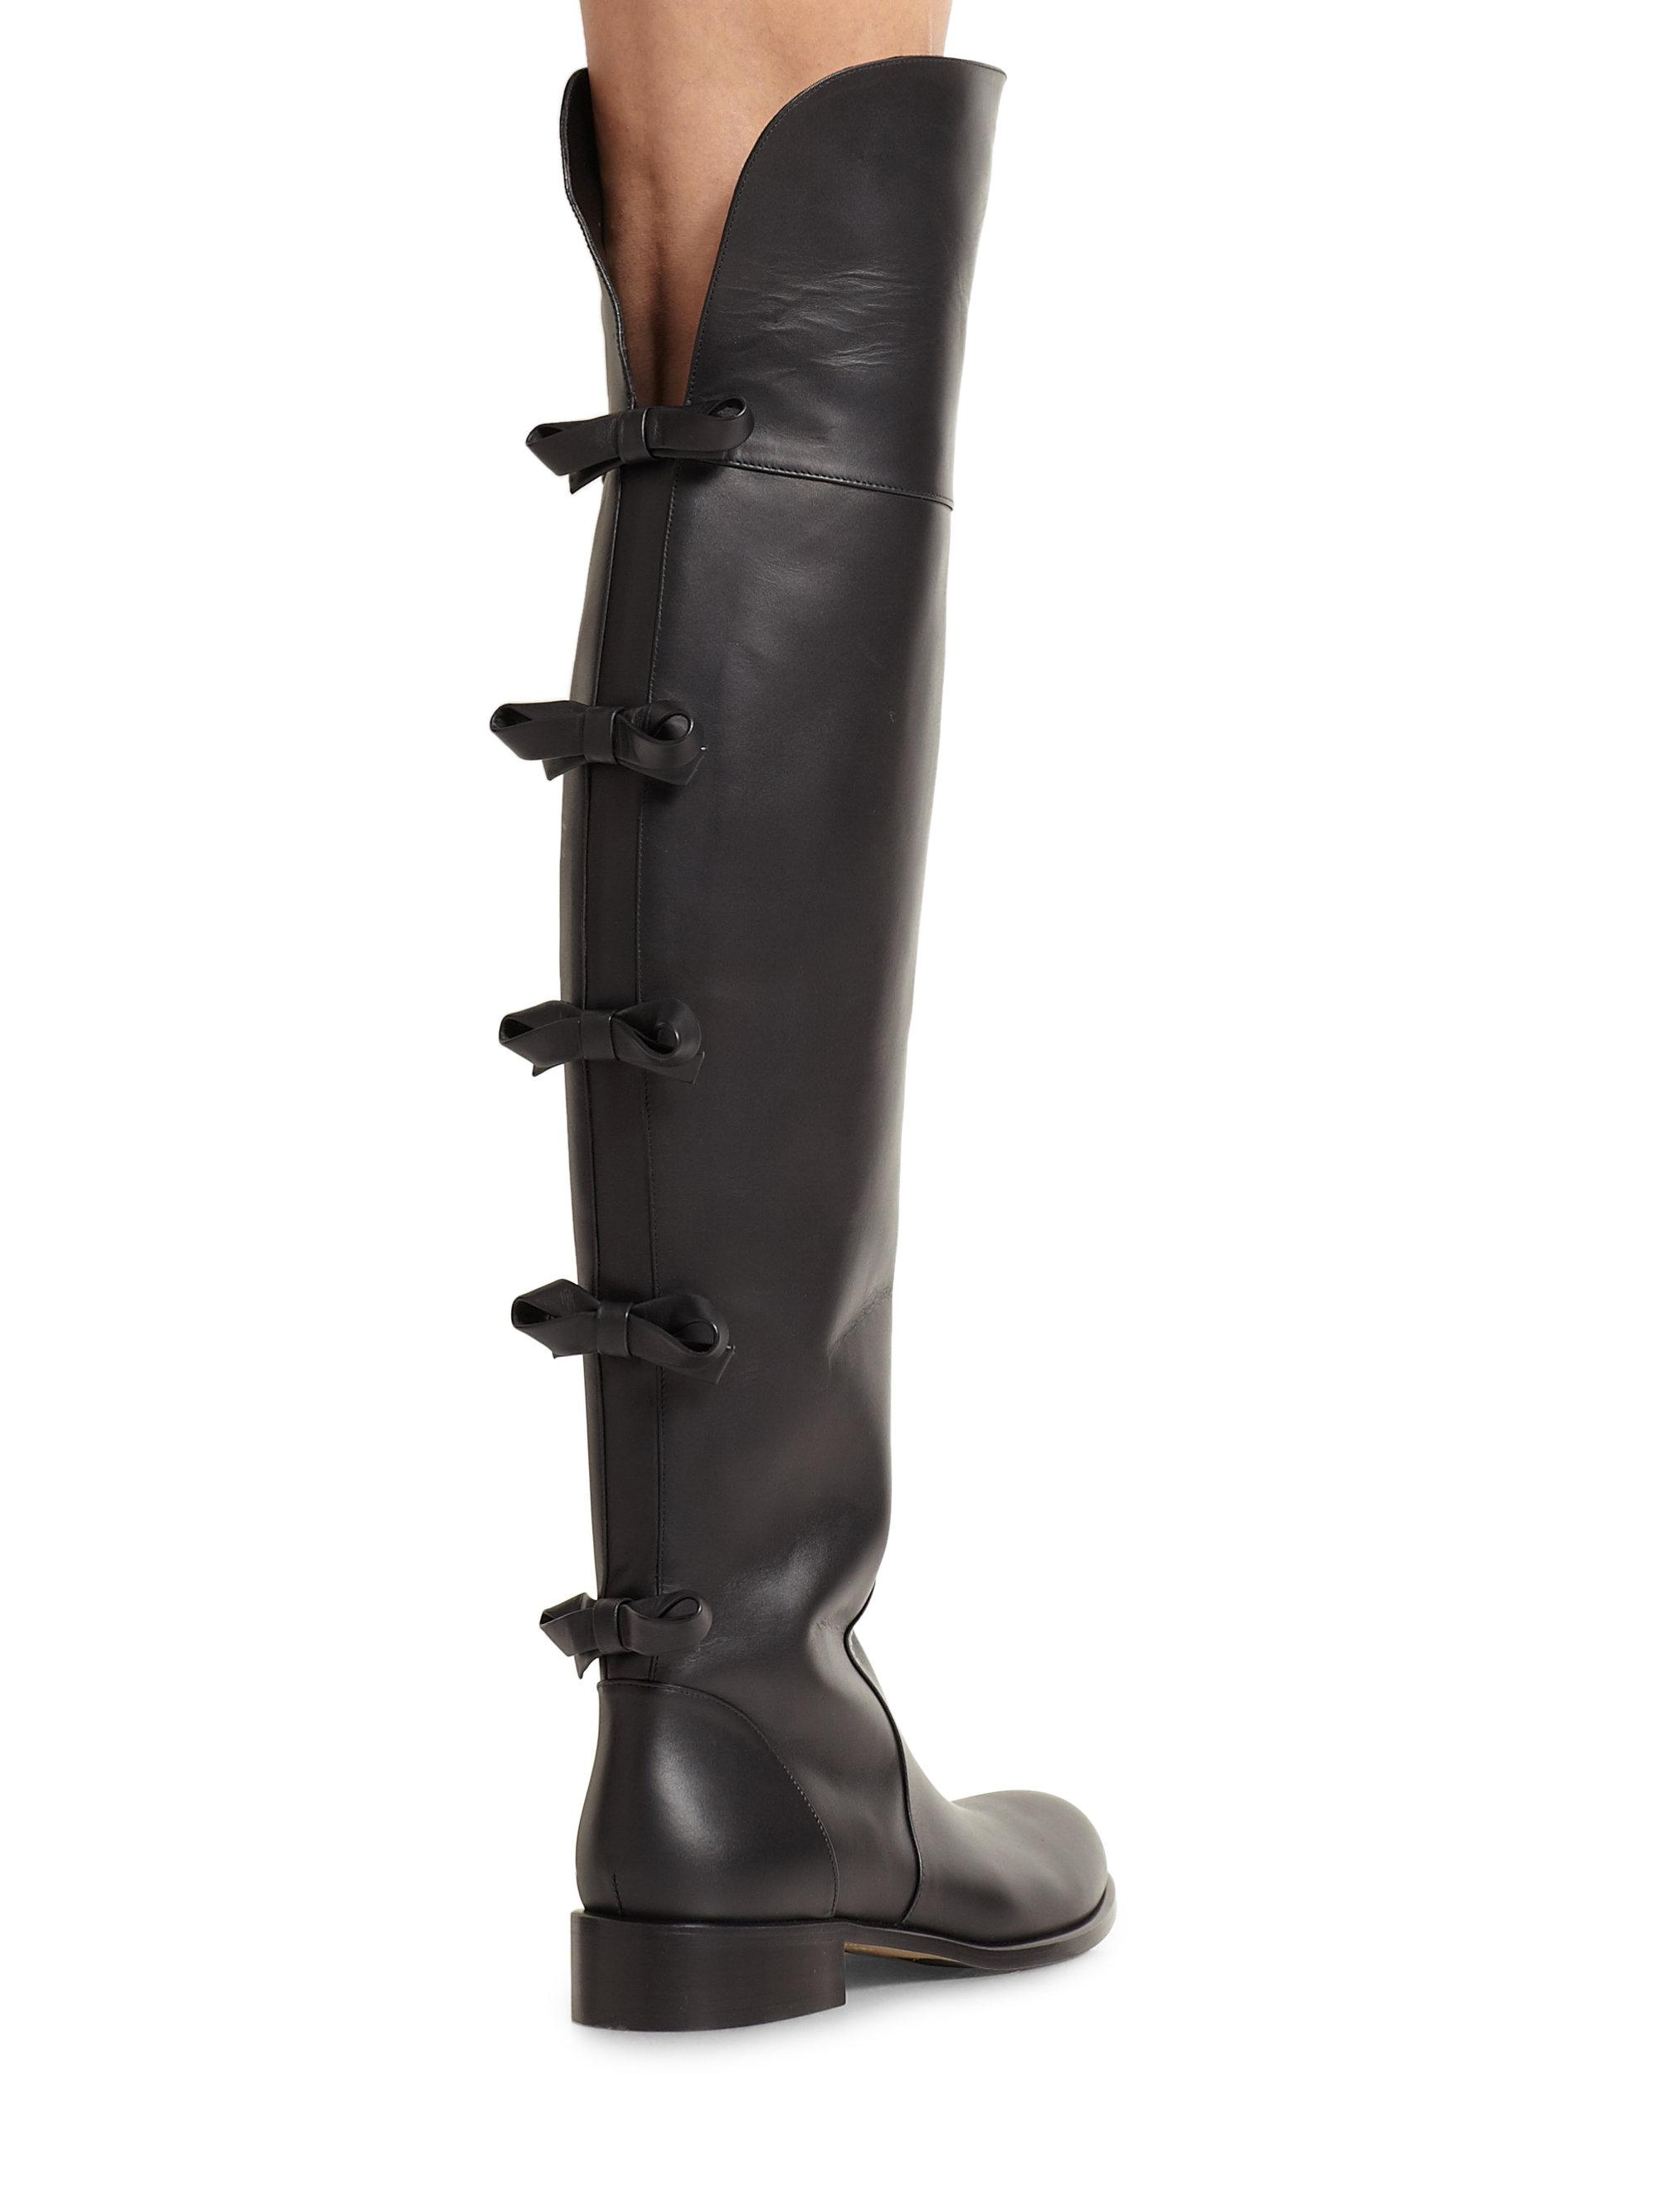 Valentino Black Bow Over The Knee Boots/Booties Size EU 36 (Approx. US 6) Regular (M, B)